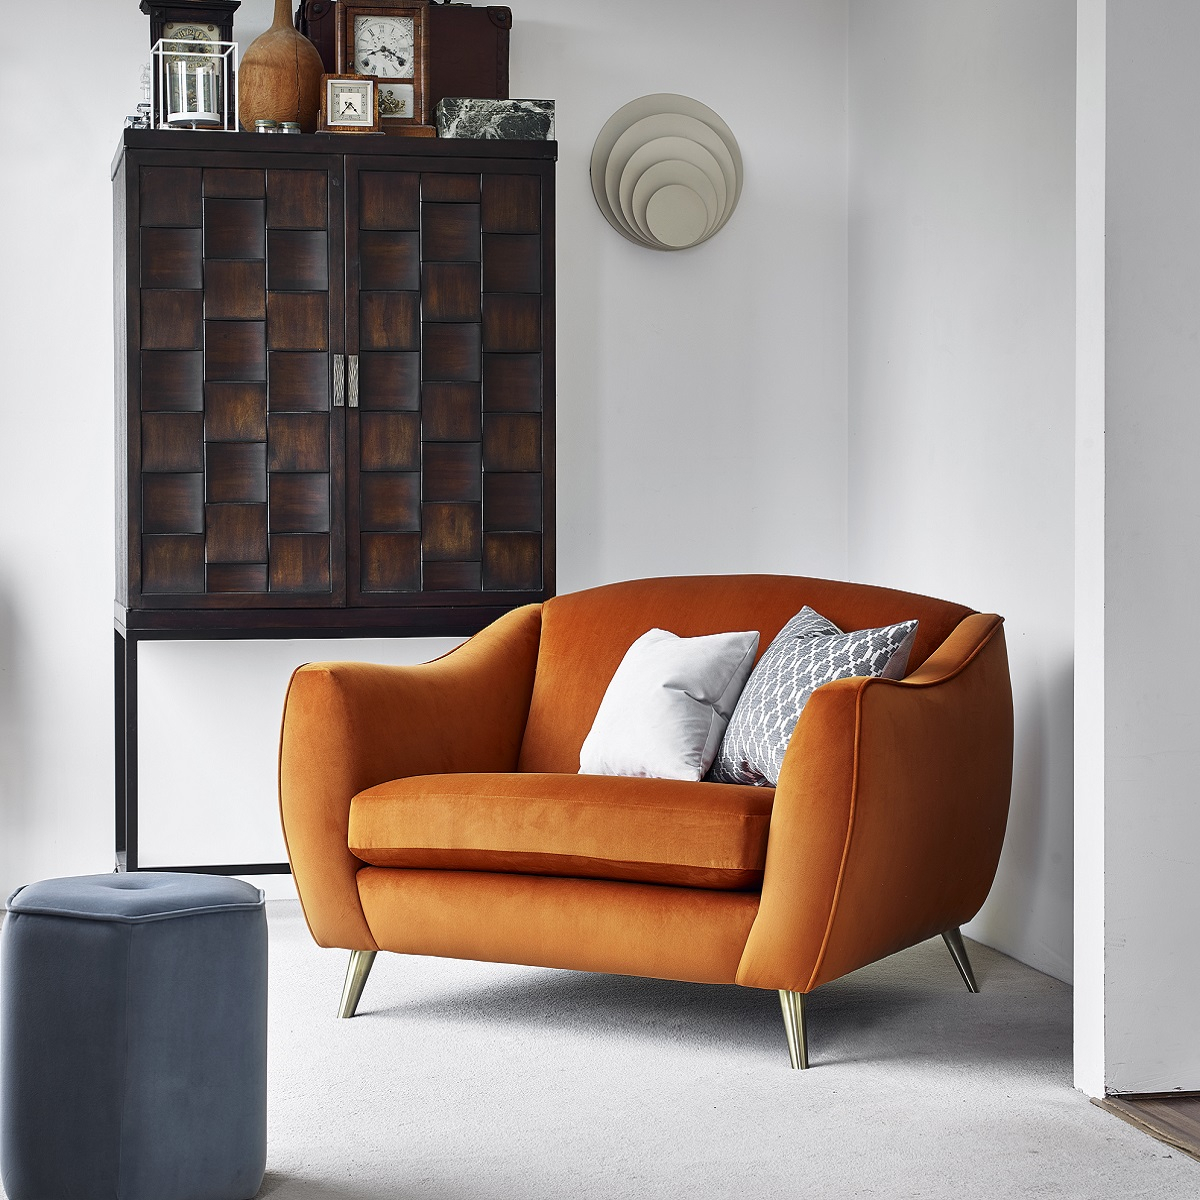 The Milo Snuggler Chair. Hj Home At Knees Home And Electrical (Image 23 of 25)